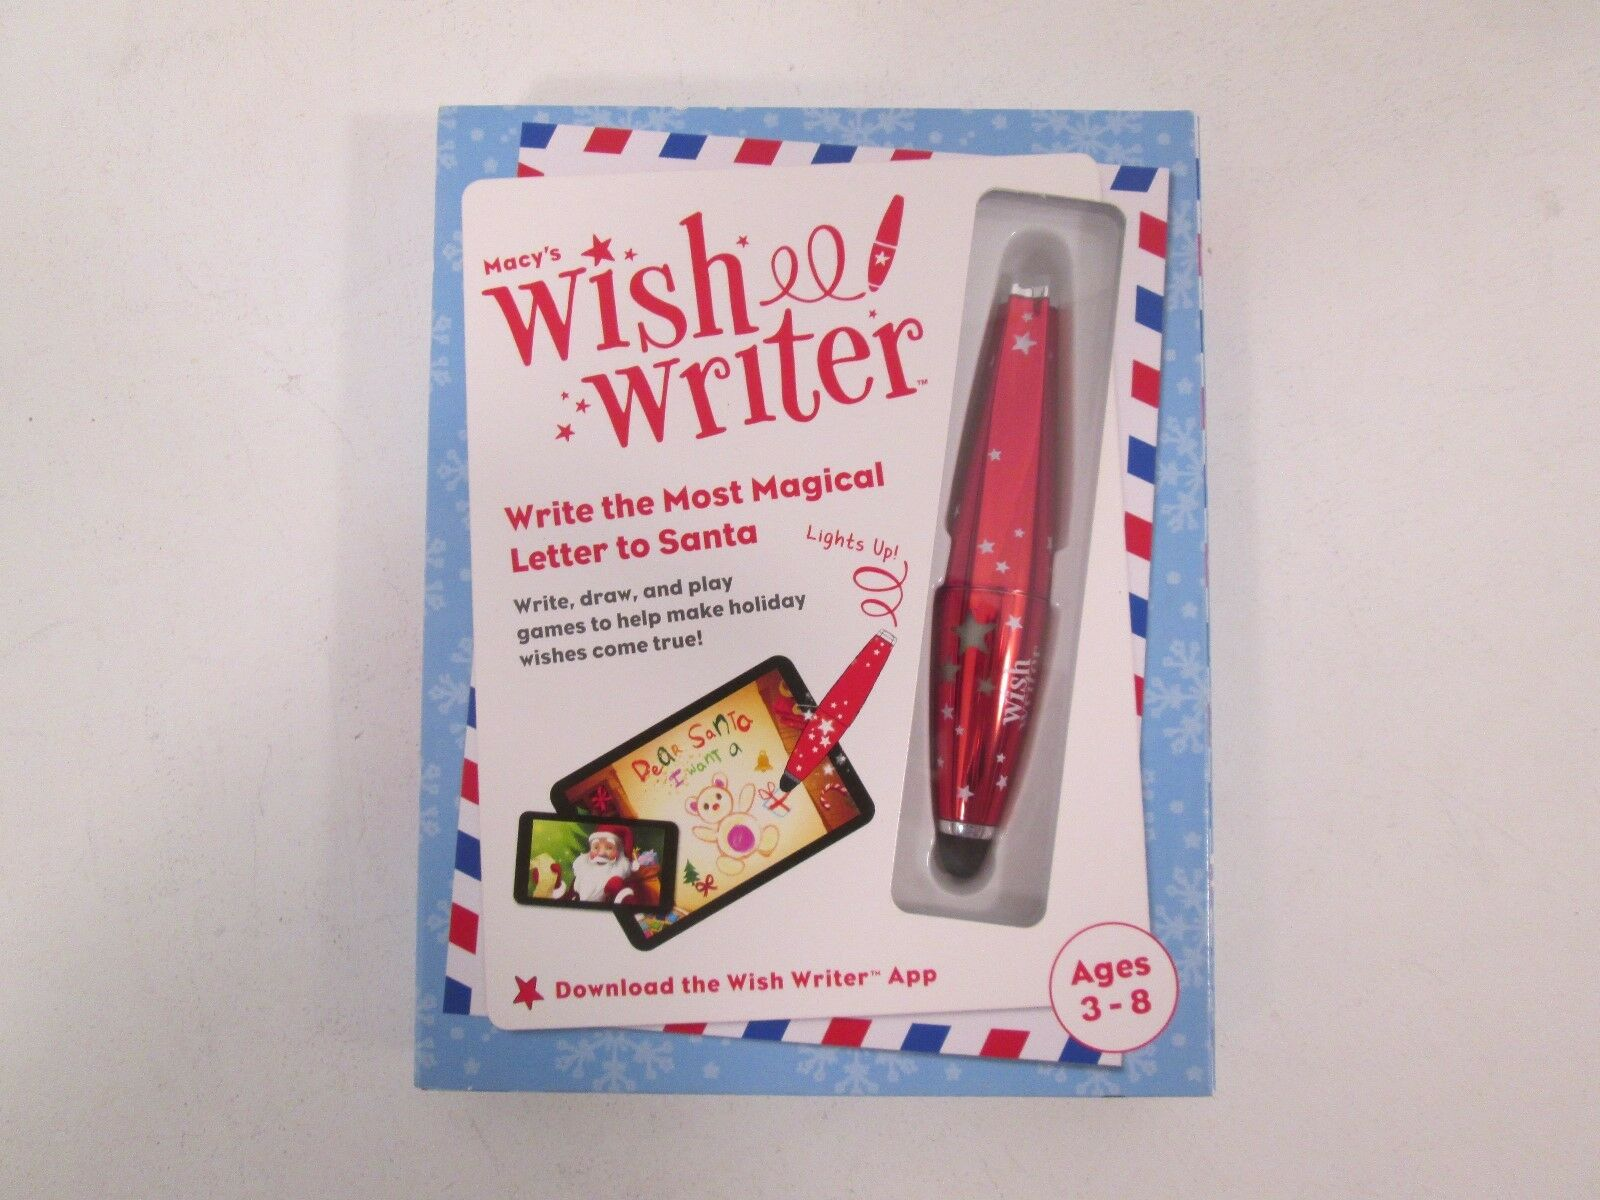 Macys wish writer stylus write magical letters to santa new sealed macys wish writer stylus write magical letters to santa new sealed ebay spiritdancerdesigns Gallery